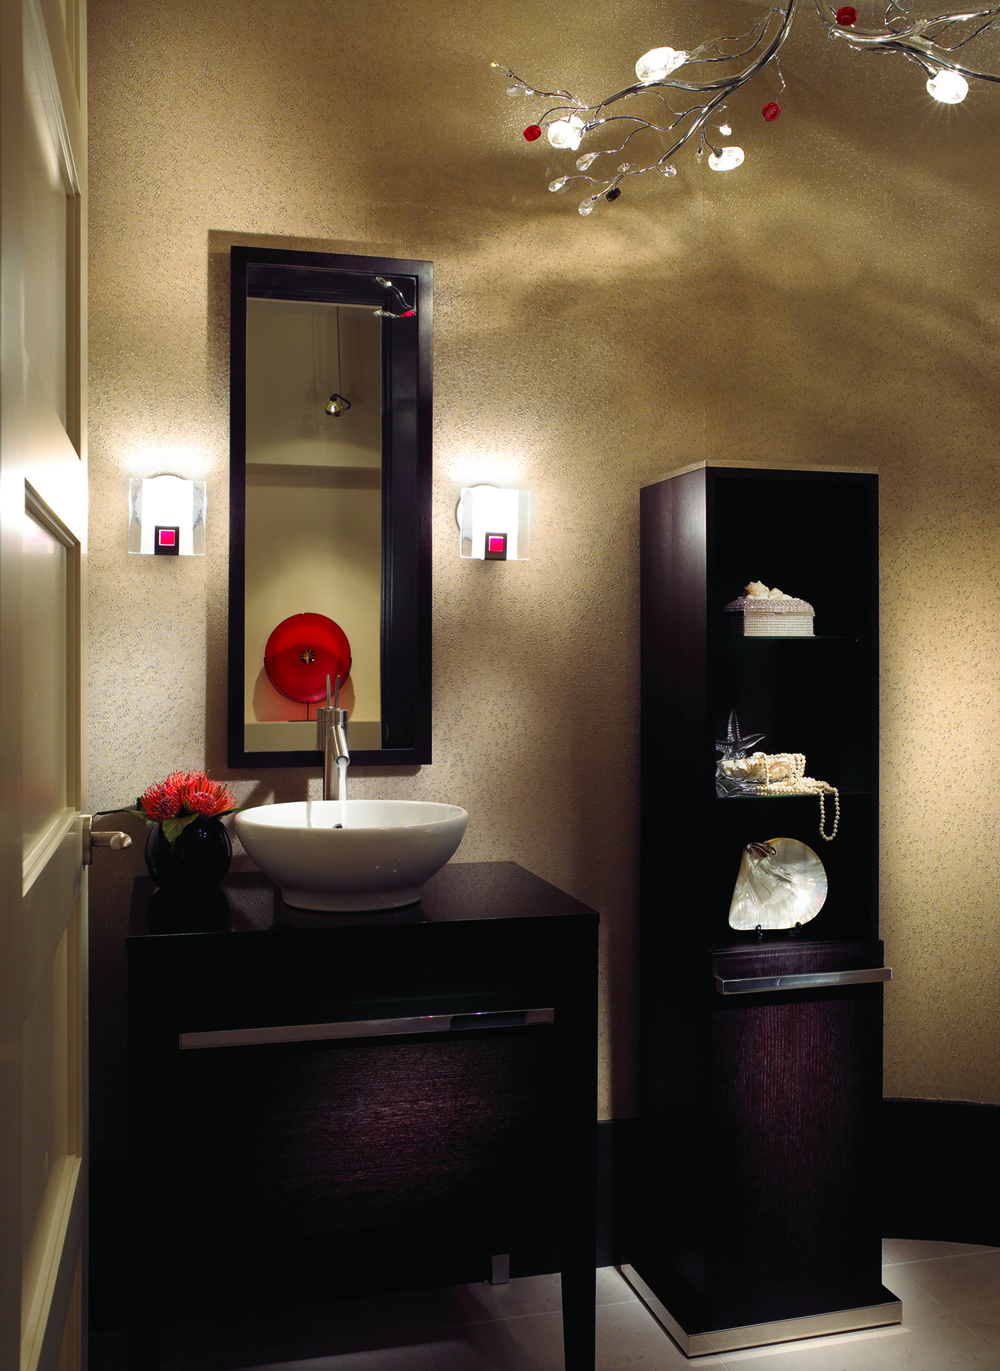 Naples-florida-AriaBuilding-powder-room.jpg